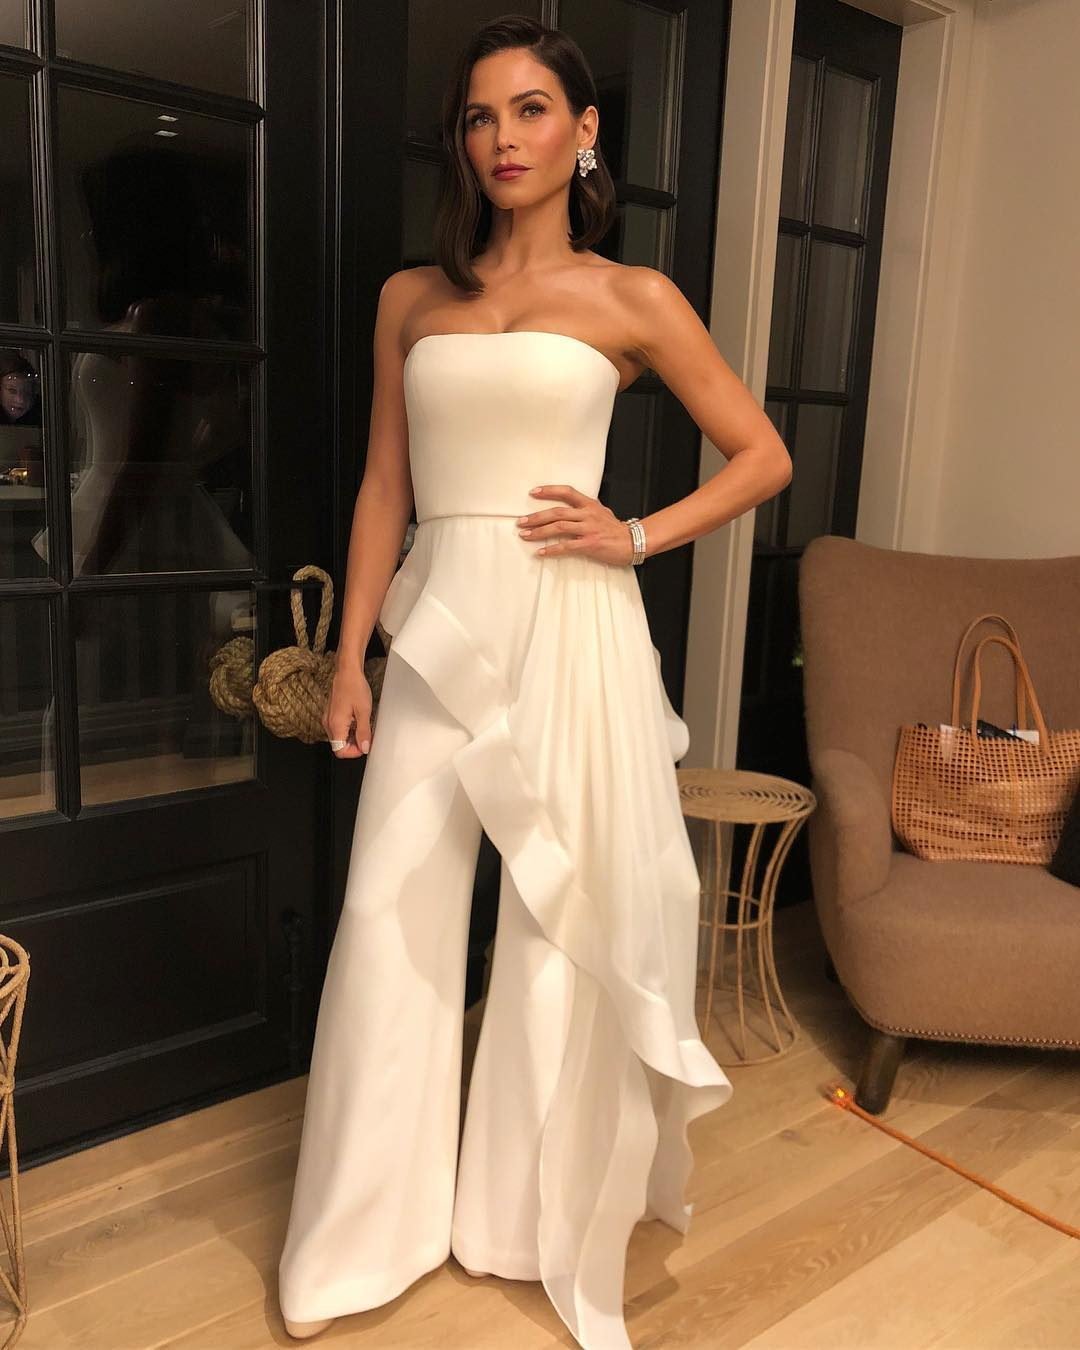 Jenna Dewan Wearing White Evening Strapless Jumpsuit 2019